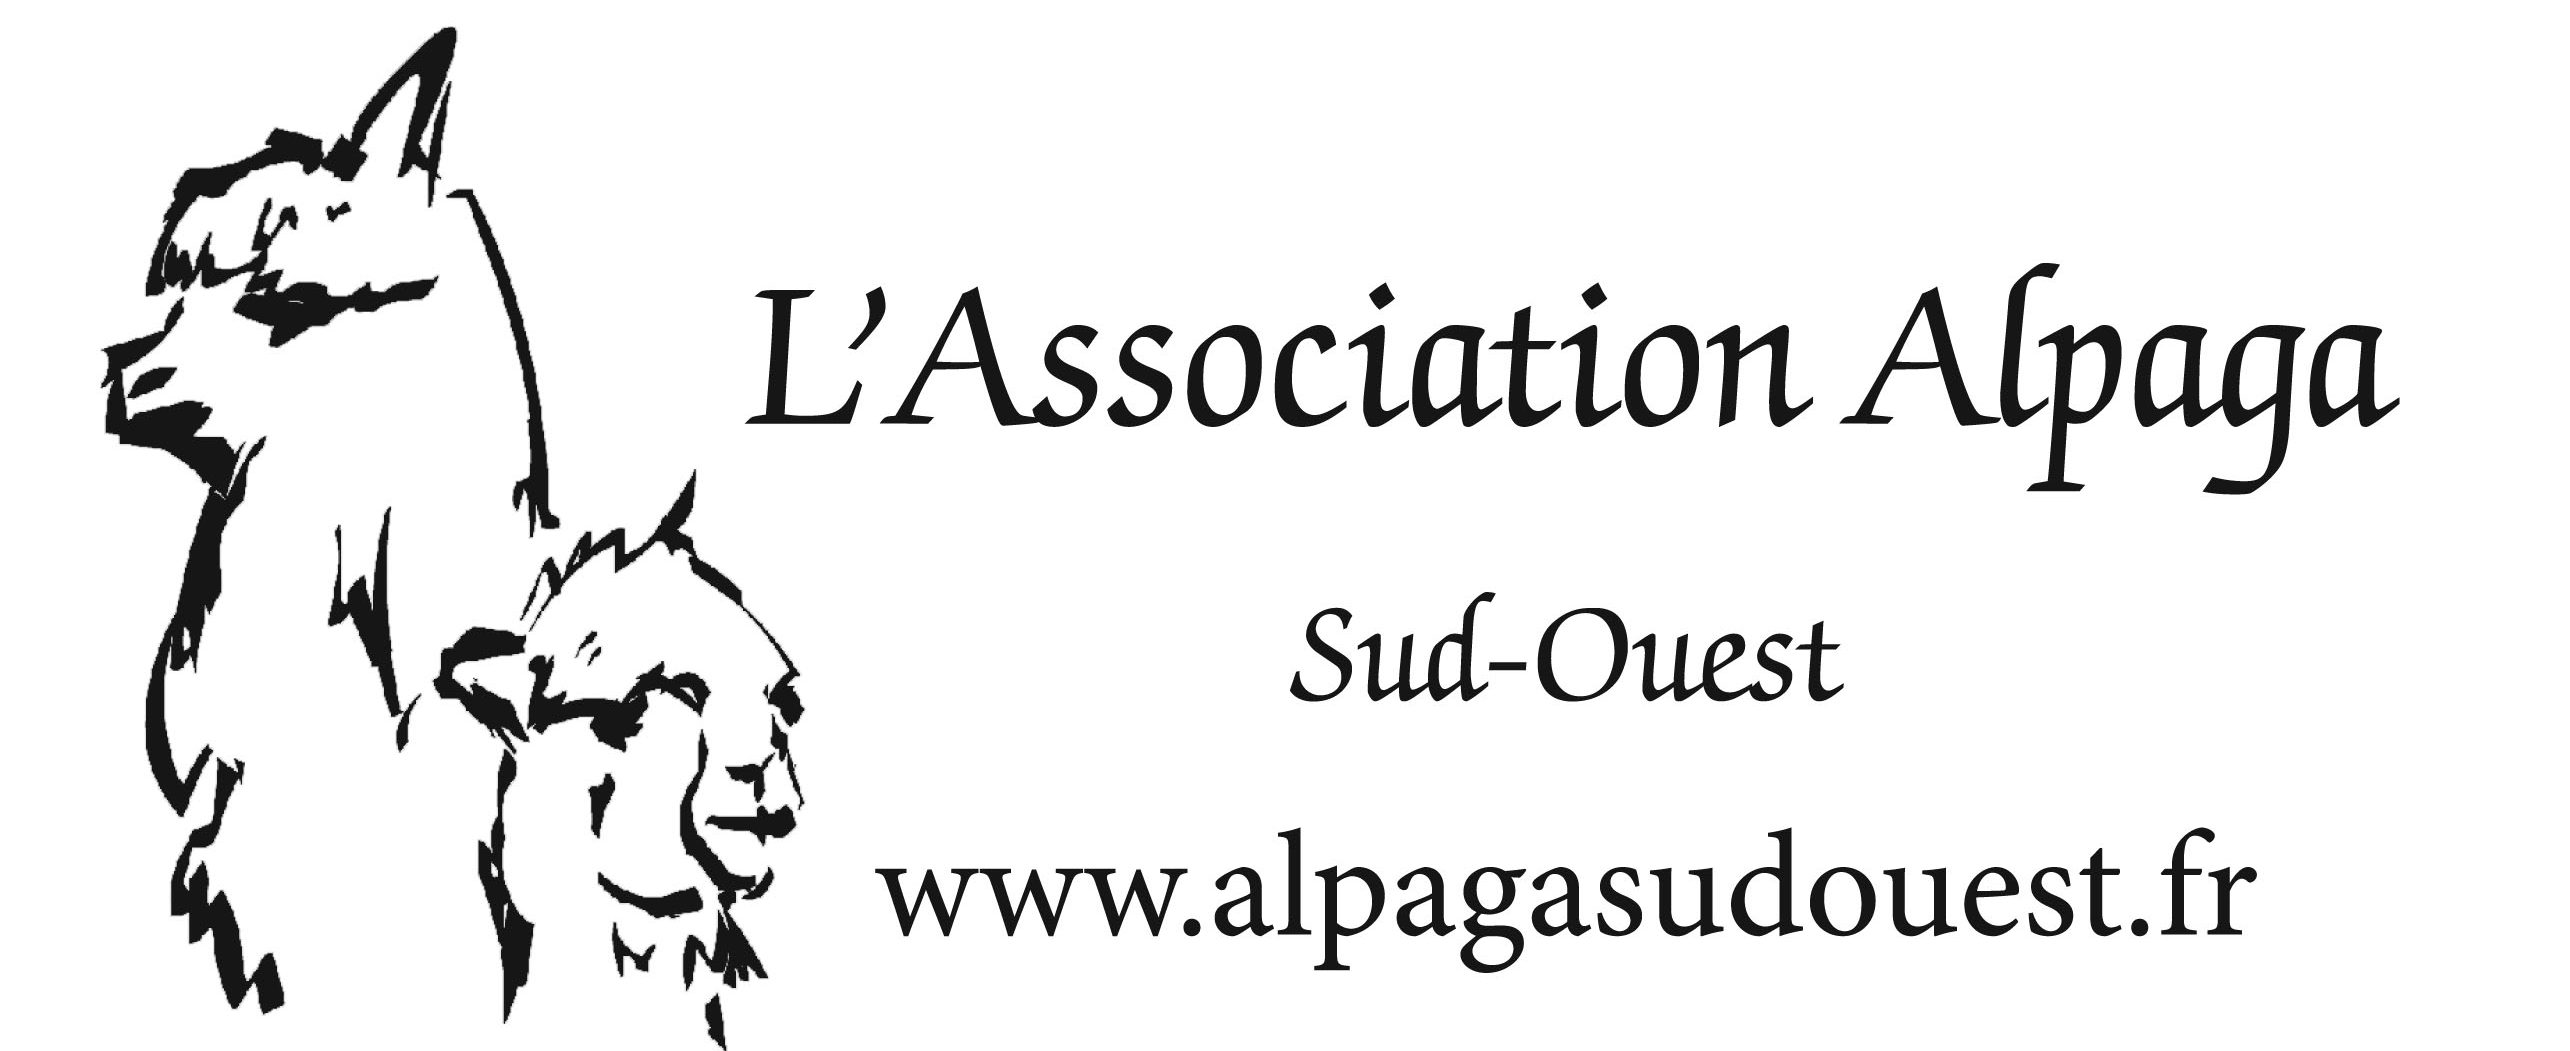 L'Association Alpaga Sud-Ouest